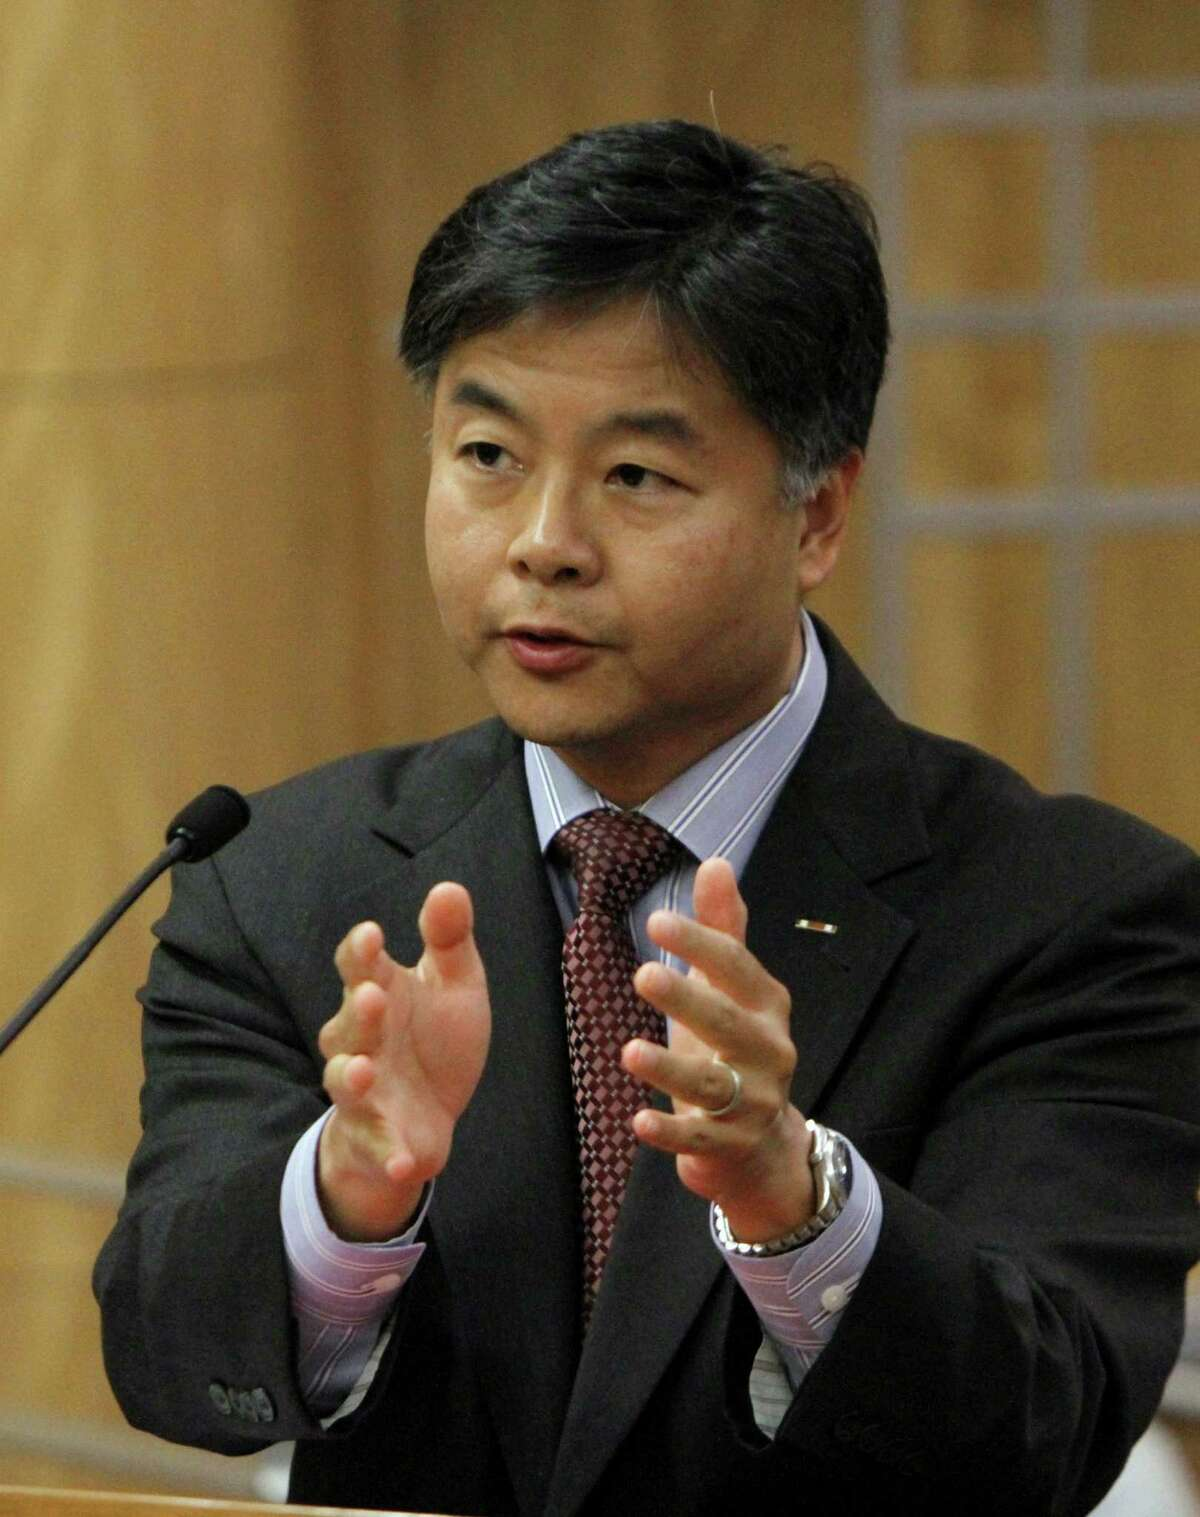 Rep. Ted Lieu says backdoors in software are stupid.